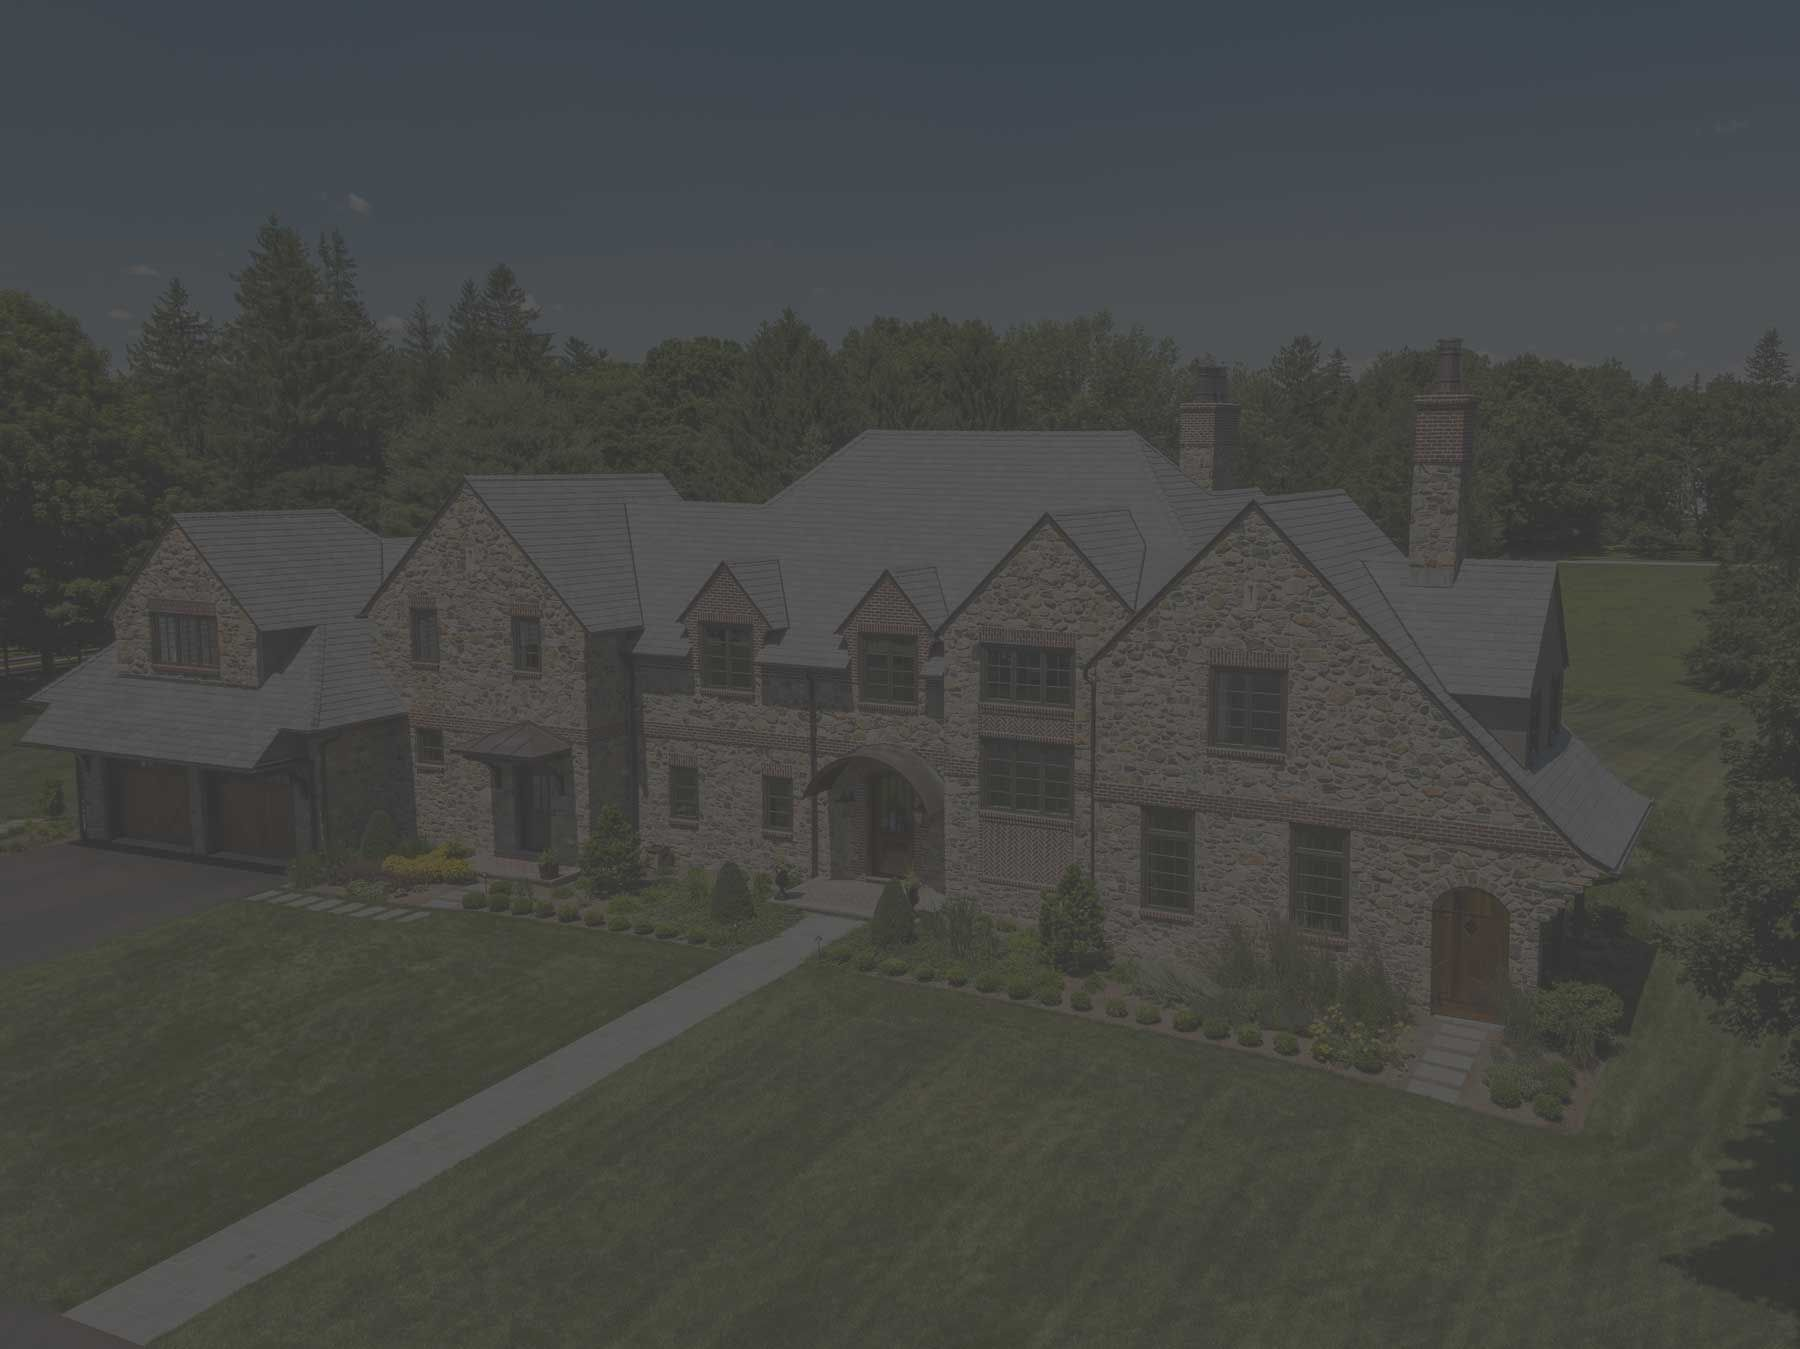 BUILDING EXCEPTIONAL HOMES